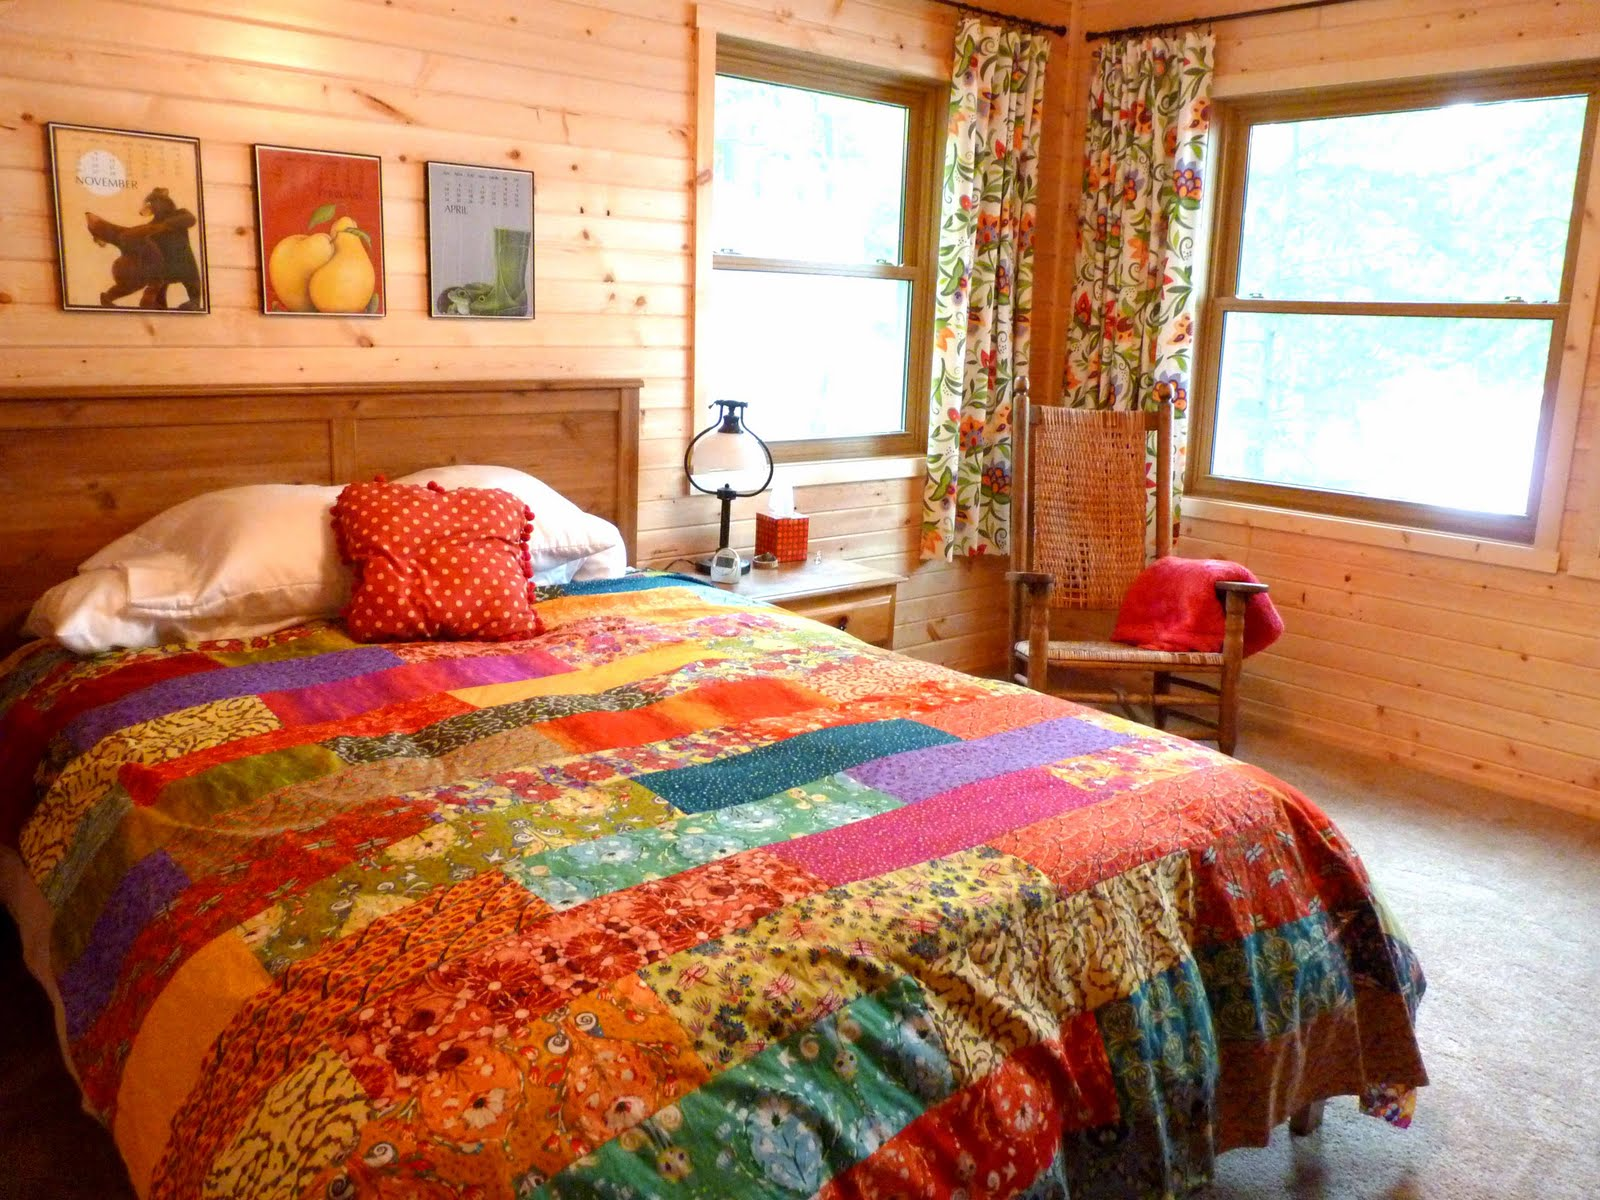 Quilt Ideas For Master Bedroom : Jerisew(s): Master Bedroom Quilt?